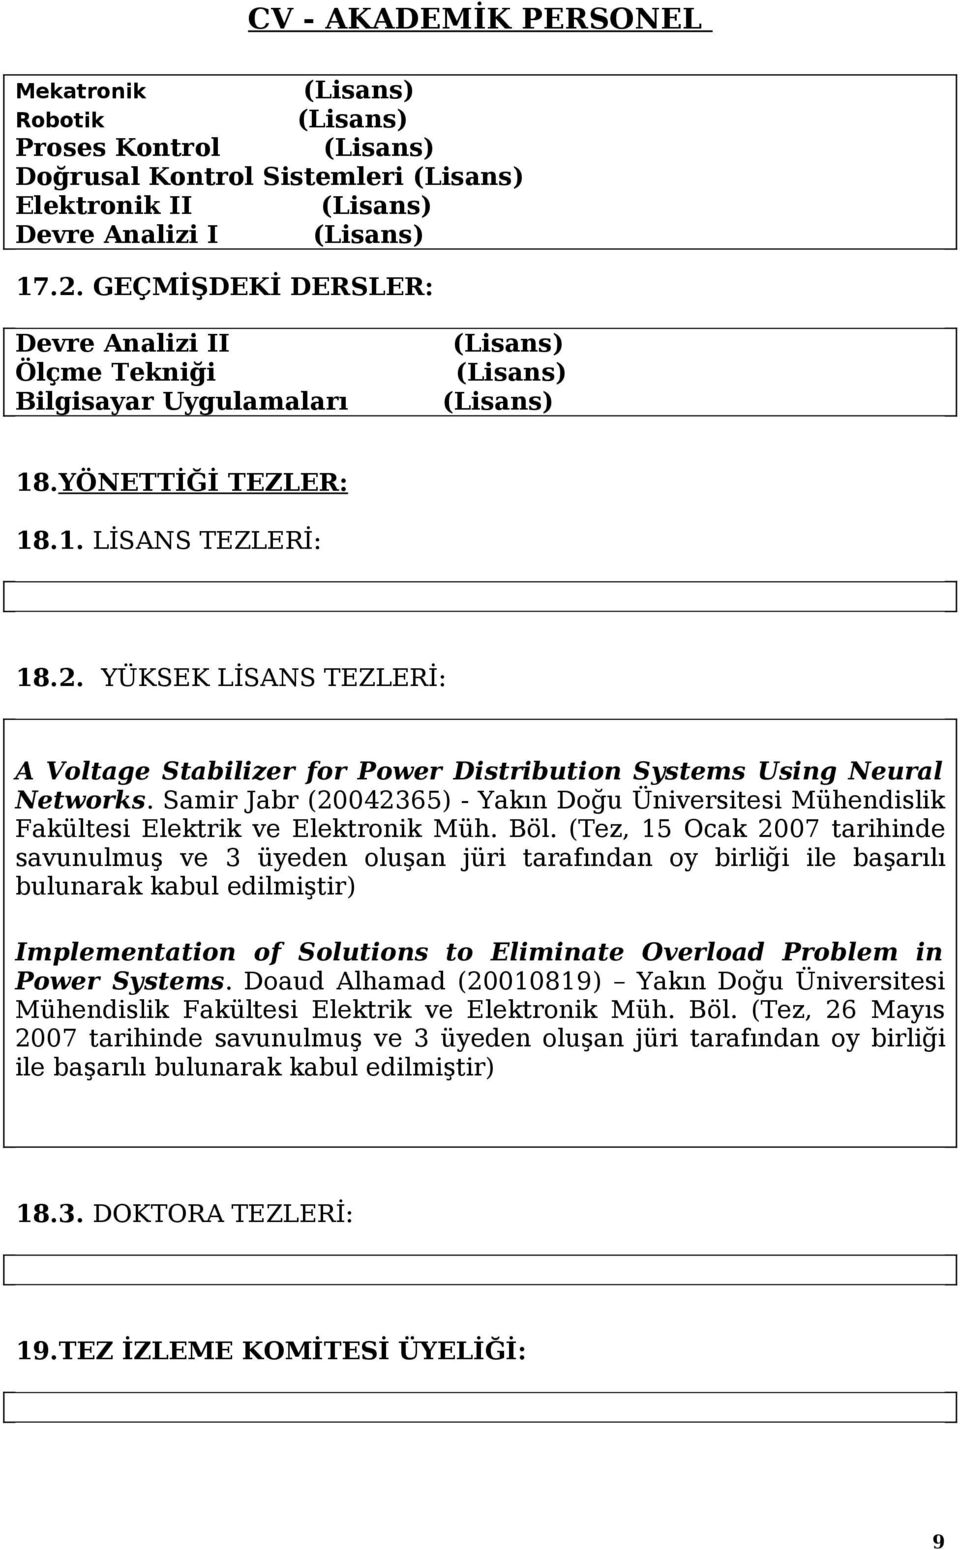 Böl. (Tez, 15 Ocak 2007 tarihinde savunulmuş ve 3 üyeden oluşan jüri tarafından oy birliği ile başarılı bulunarak kabul edilmiştir) Implementation of Solutions to Eliminate Overload Problem in Power